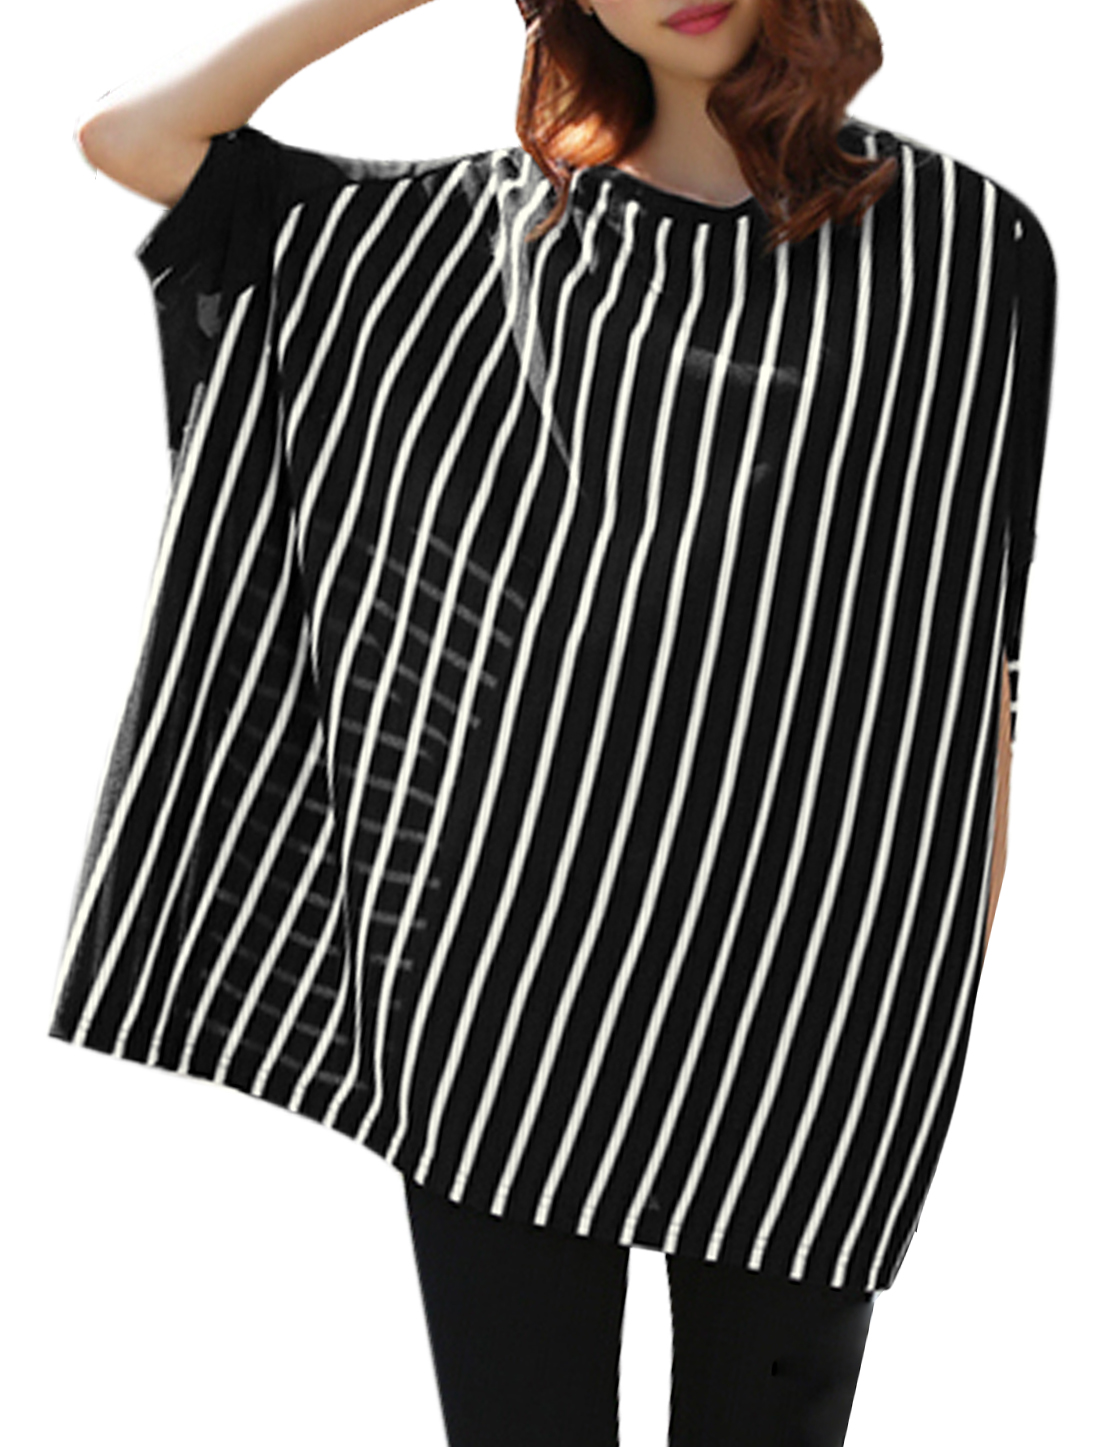 Women Chiffon Panel Elbow Batwing Sleeves Stripes Tunic Blouses Black White M